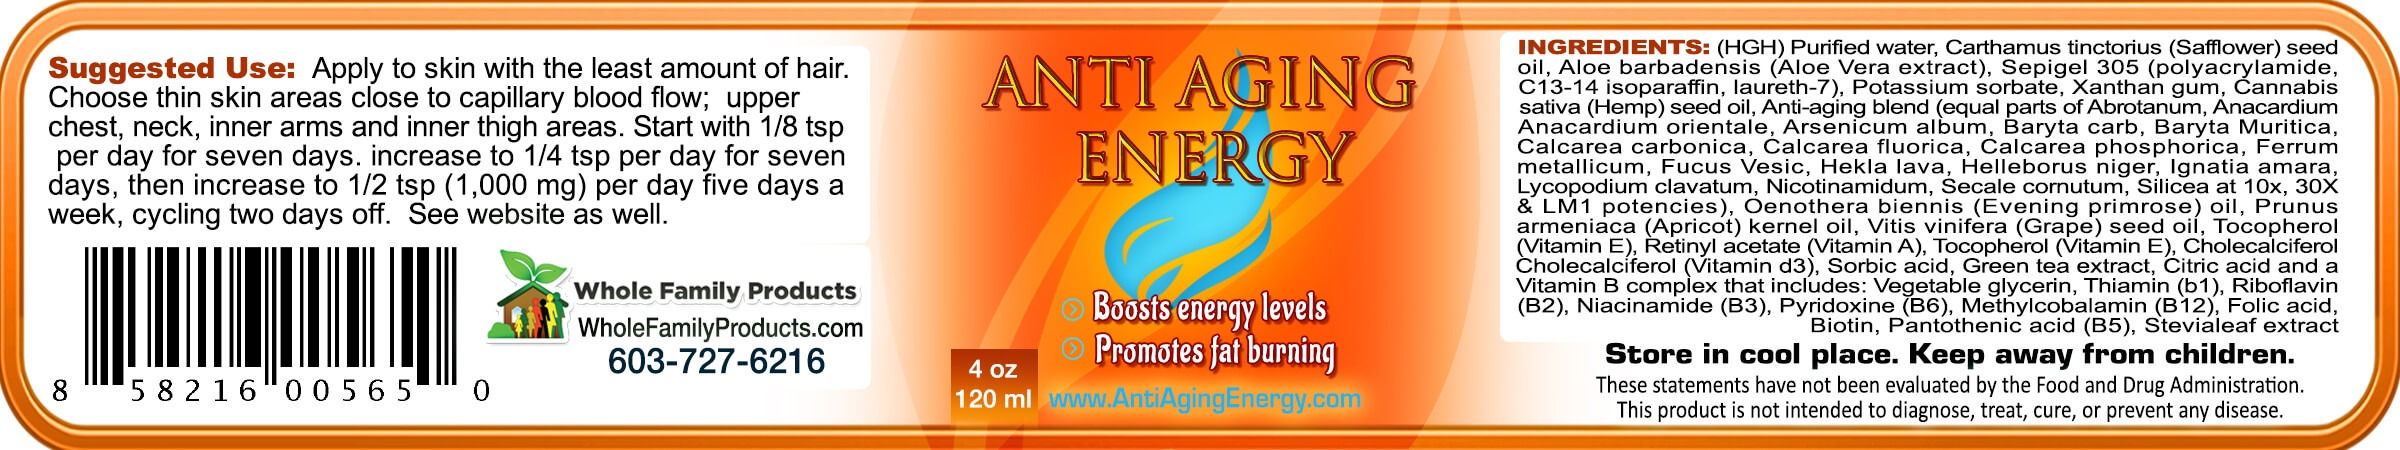 Anti Aging Energy Cream Label